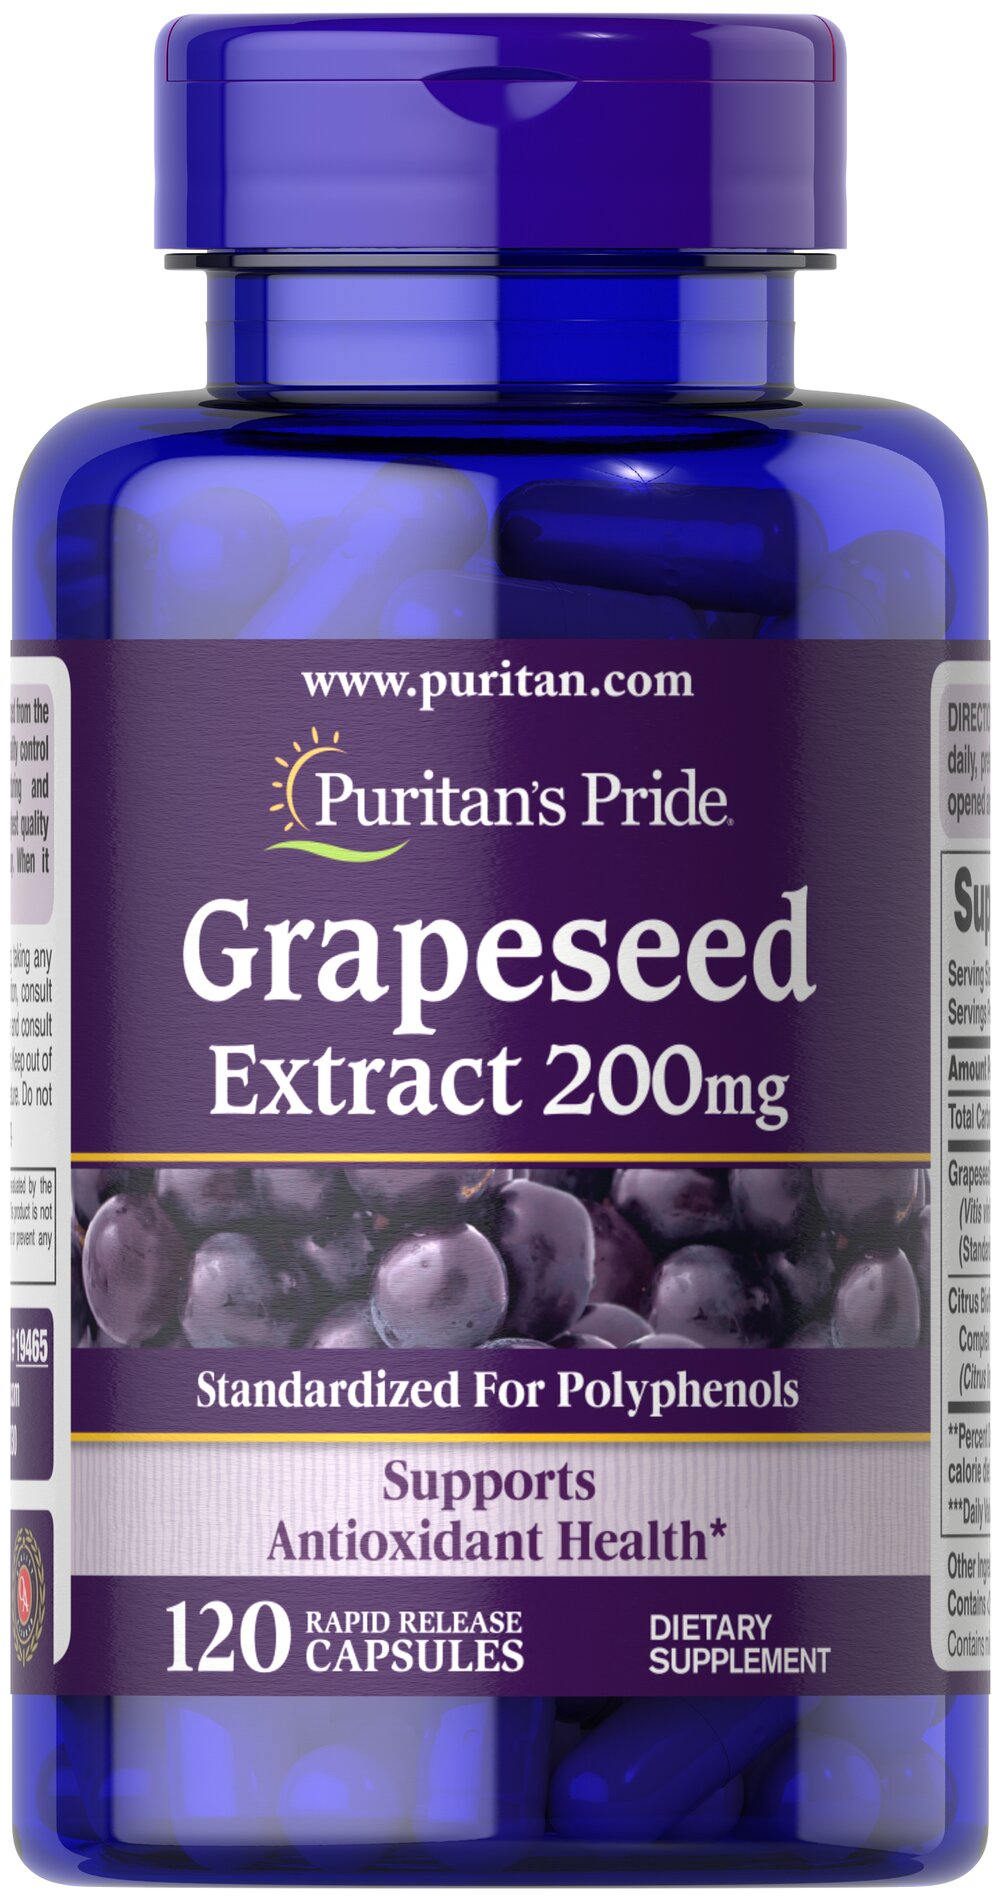 Grapeseed Extract 200 mg <p><b>Grapeseed Extract</b> helps maintain antioxidant health.** It contains oligomeric proanthocyanidins (OPCs), which are naturally occurring bioflavonoids. Free of yeast, wheat, sugar, preservatives, soy,  gluten, fish, artificial color, artificial flavor and sodium (less than 5 mg per serving). Standardized to contain 50% Polyphenols. Adults can take one capsule one or two times daily.</p> 120 Capsules 200 mg $29.99